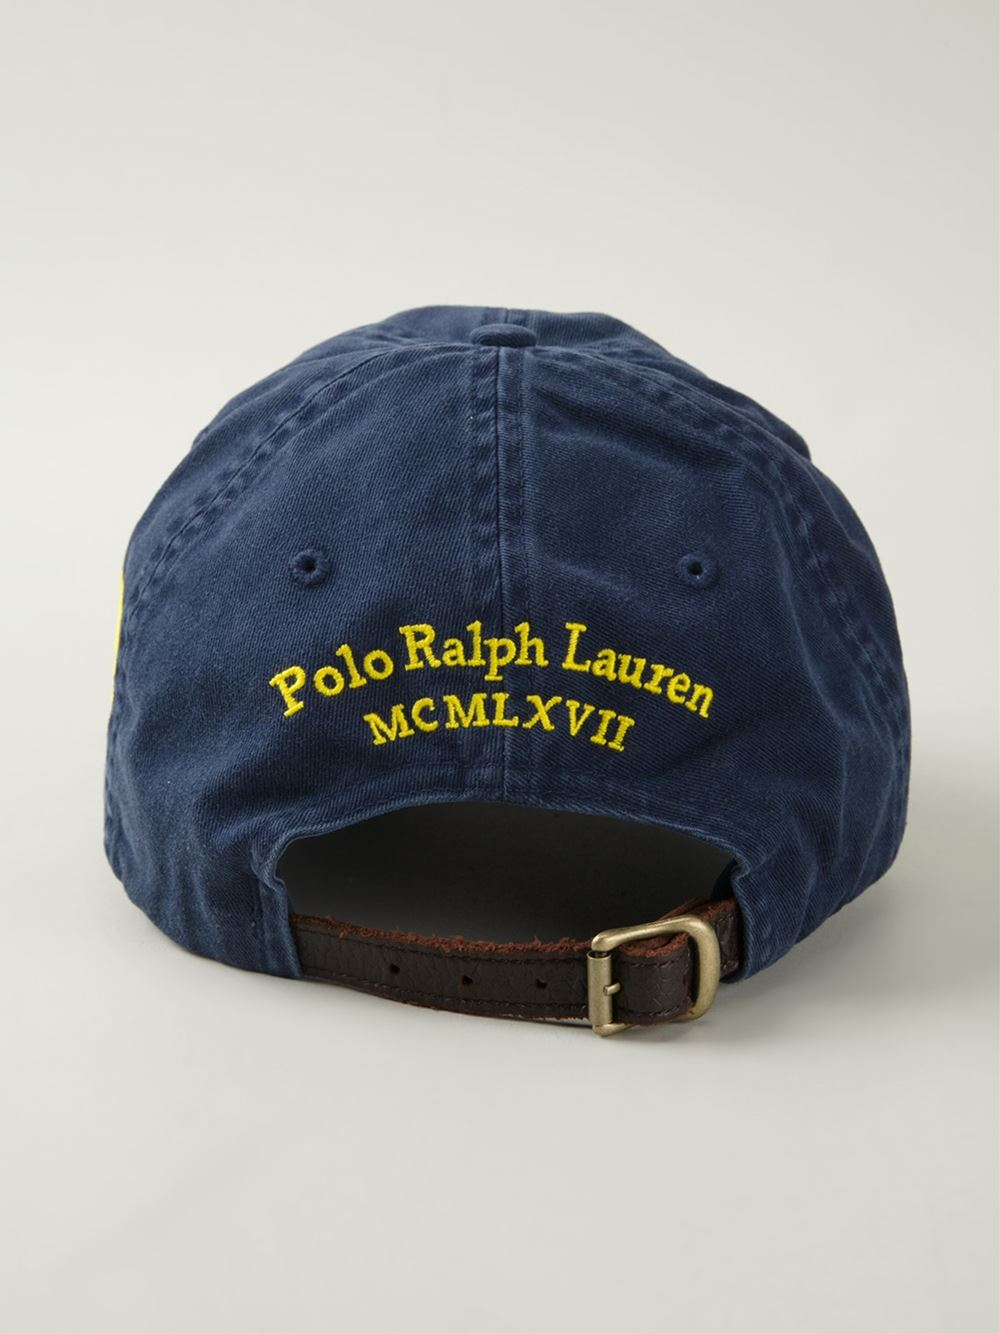 polo ralph lauren logo embroidered cap in blue for men lyst. Black Bedroom Furniture Sets. Home Design Ideas